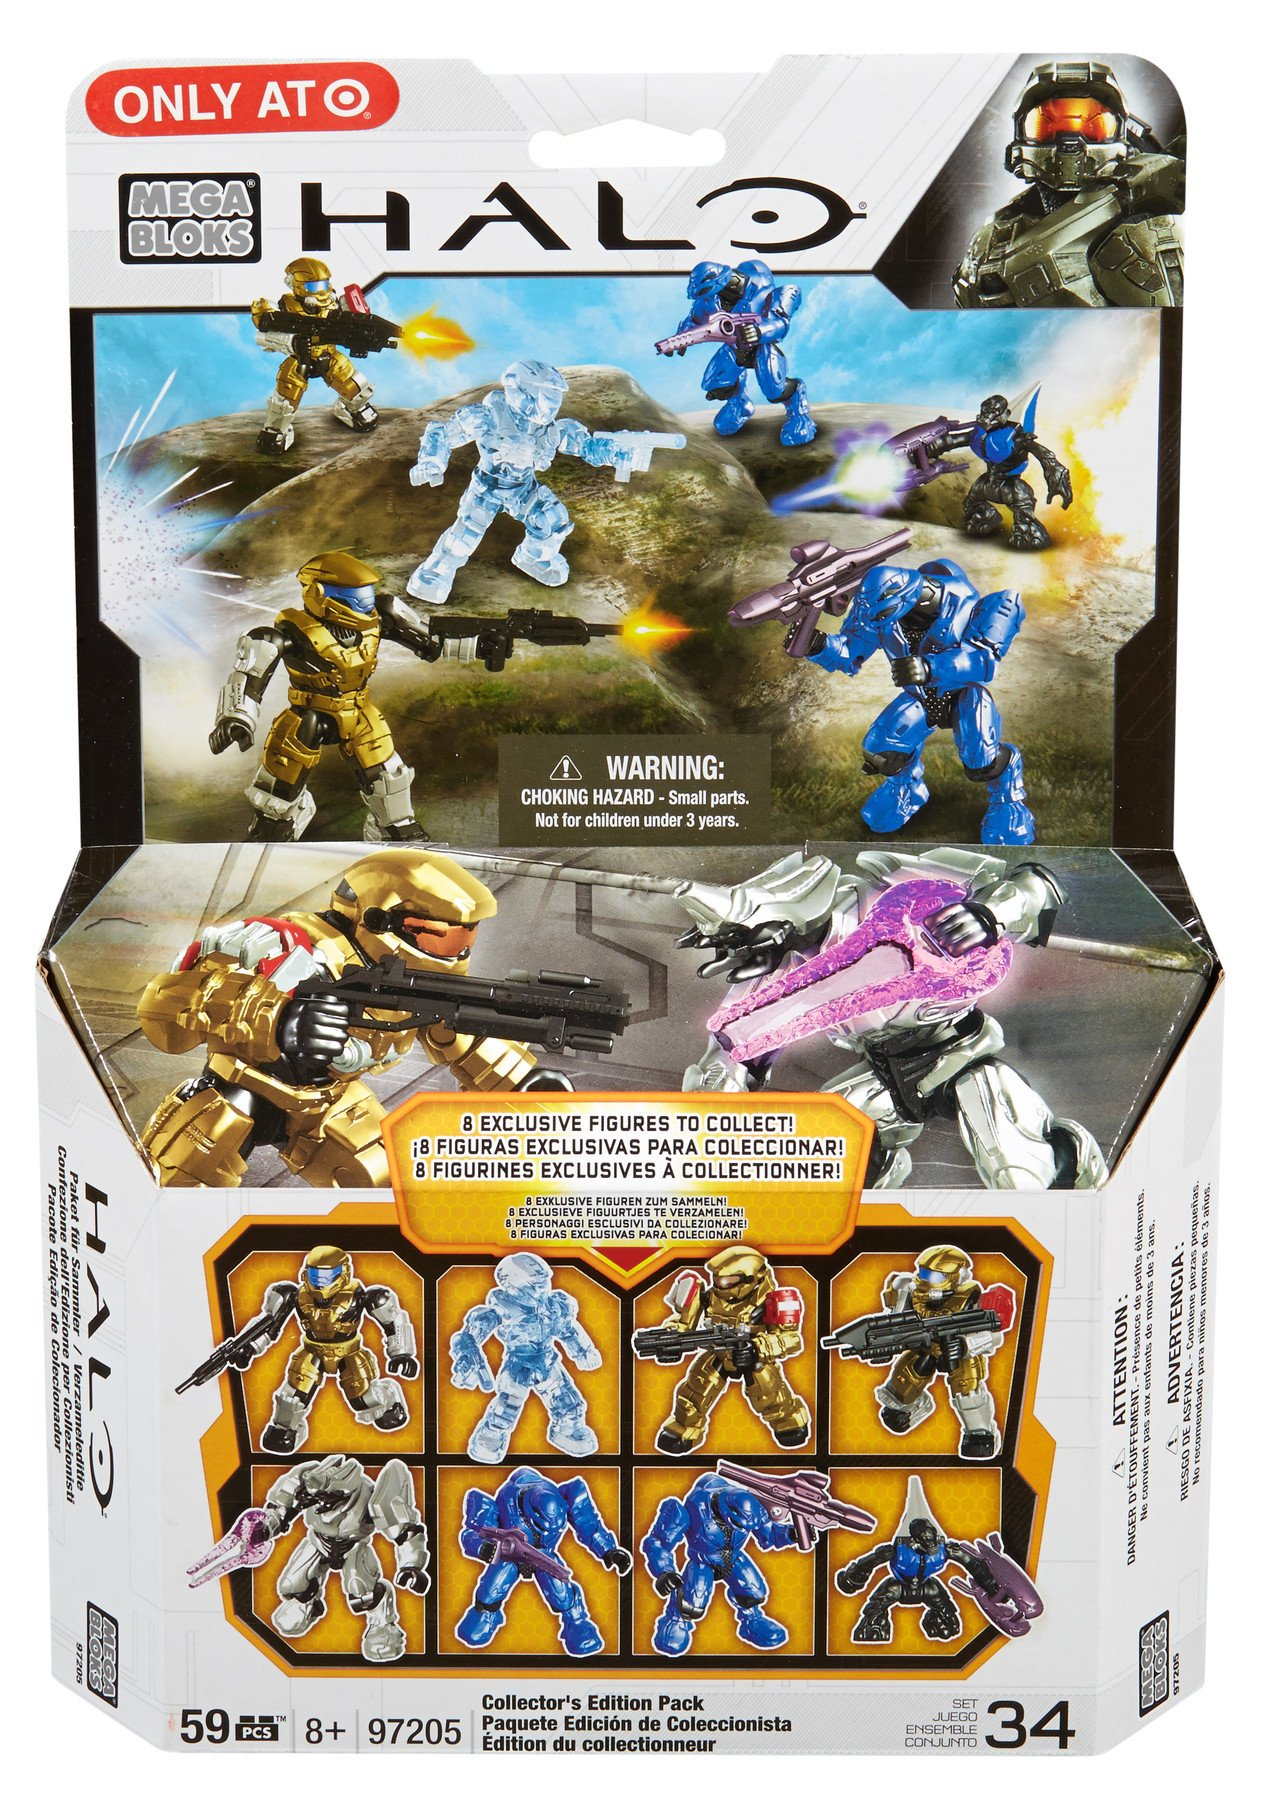 Mega Bloks Halo Collectors Edition Pack Discontinued by manufacturer